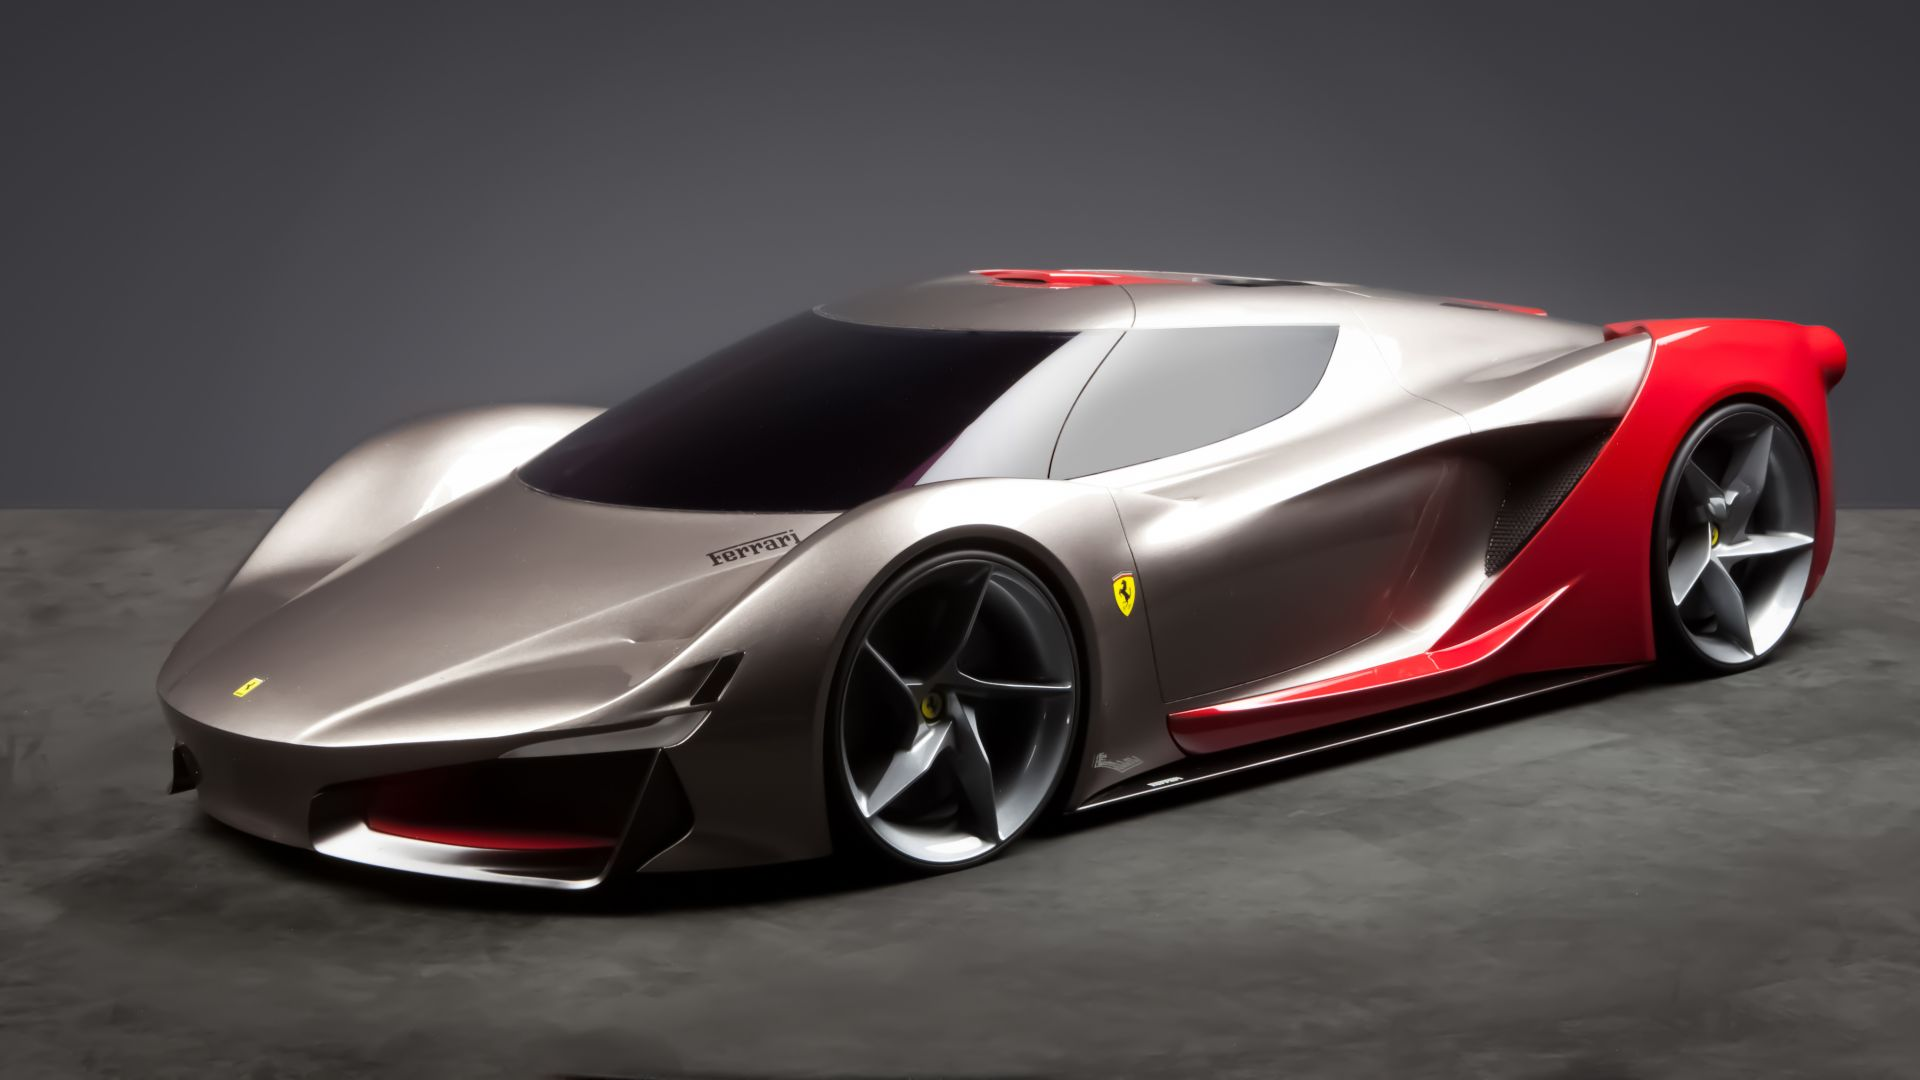 Wallpaper Ferrari 2040 De Esfera Supercar Ferrari World Design